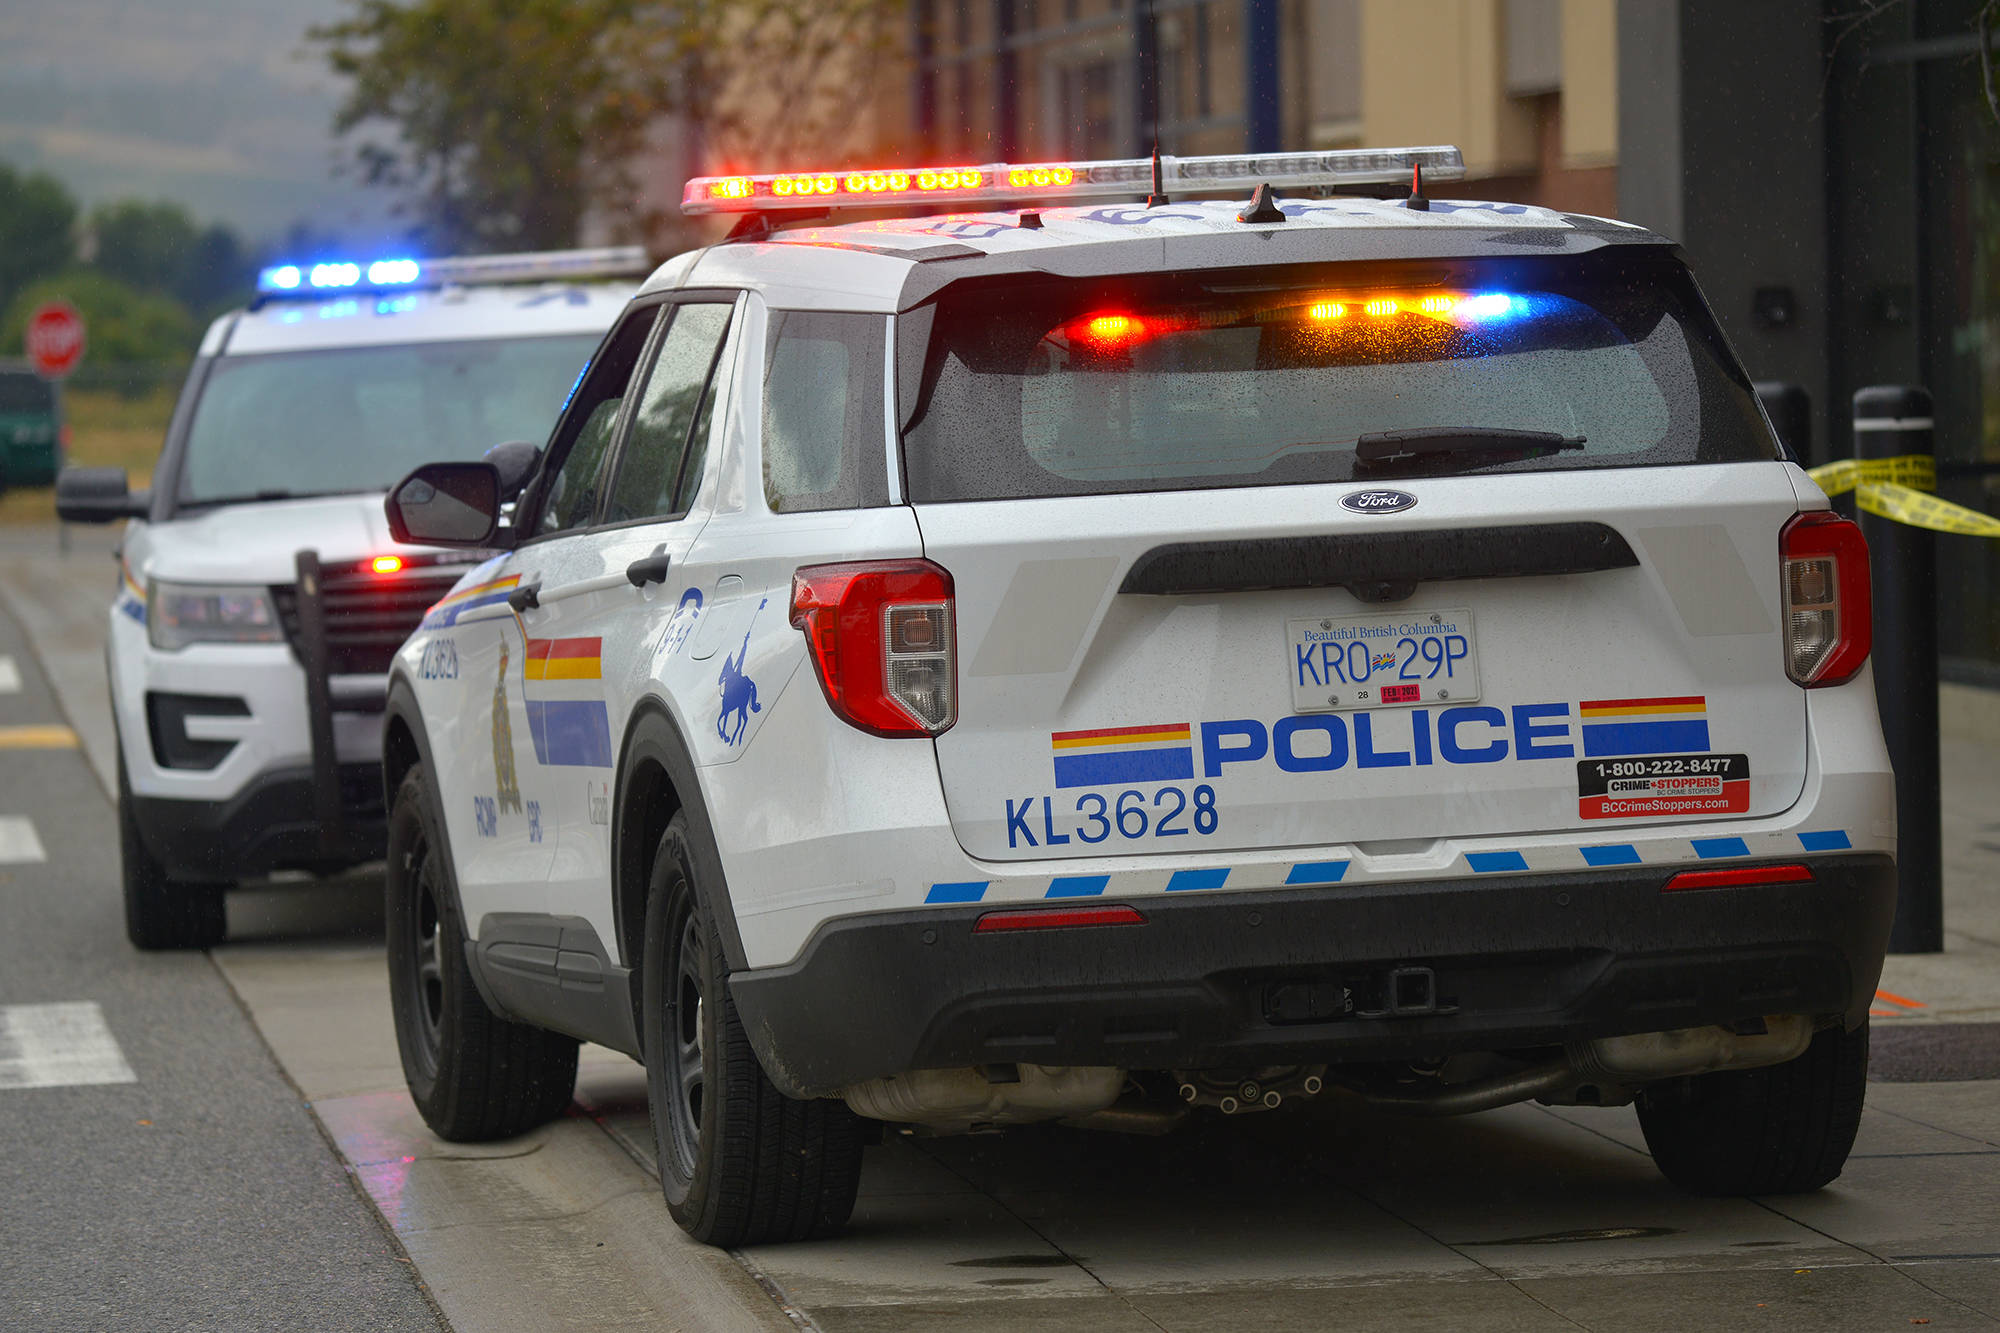 RCMP are looking for information on an alleged shooting attempt near an elementary school in Smithers March 10. (Phil McLachlan/Capital News/Stock)